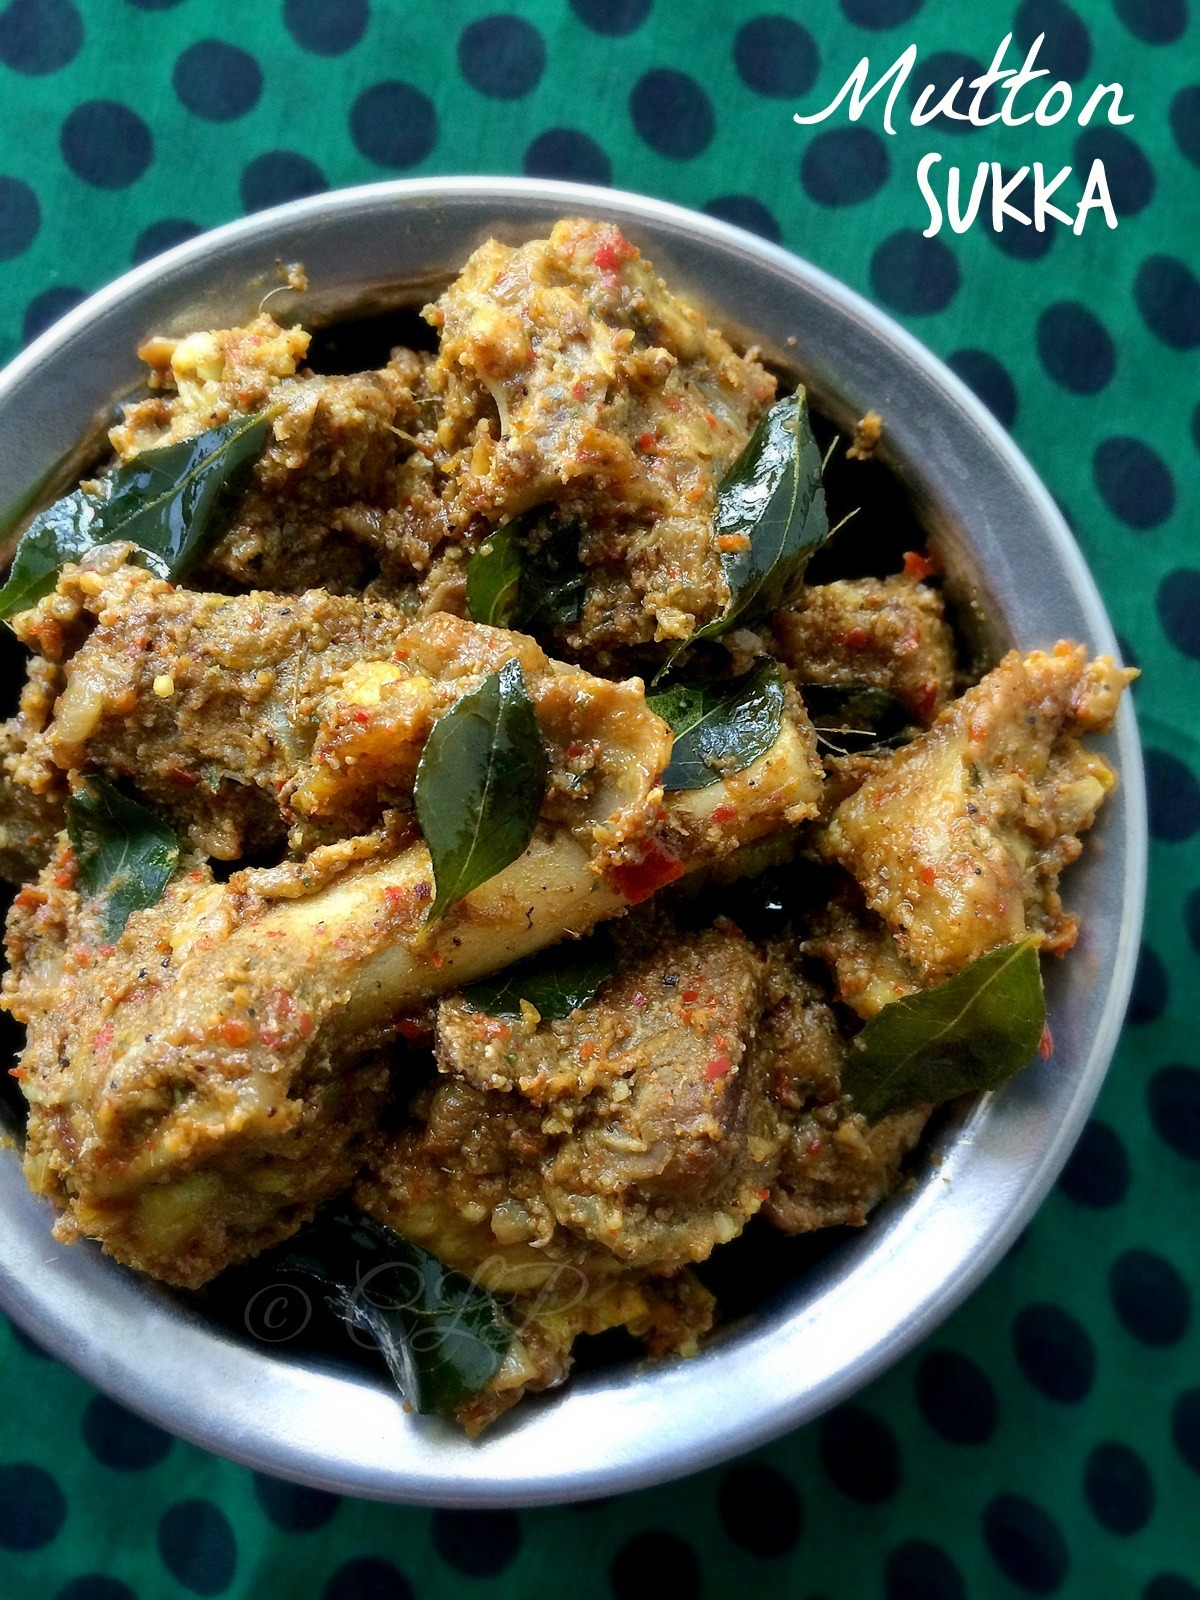 Restaurent style Mutton Sukka Varuval | Chettinad Mutton Chukka Varuval | Spicy Lamb or Goat fry